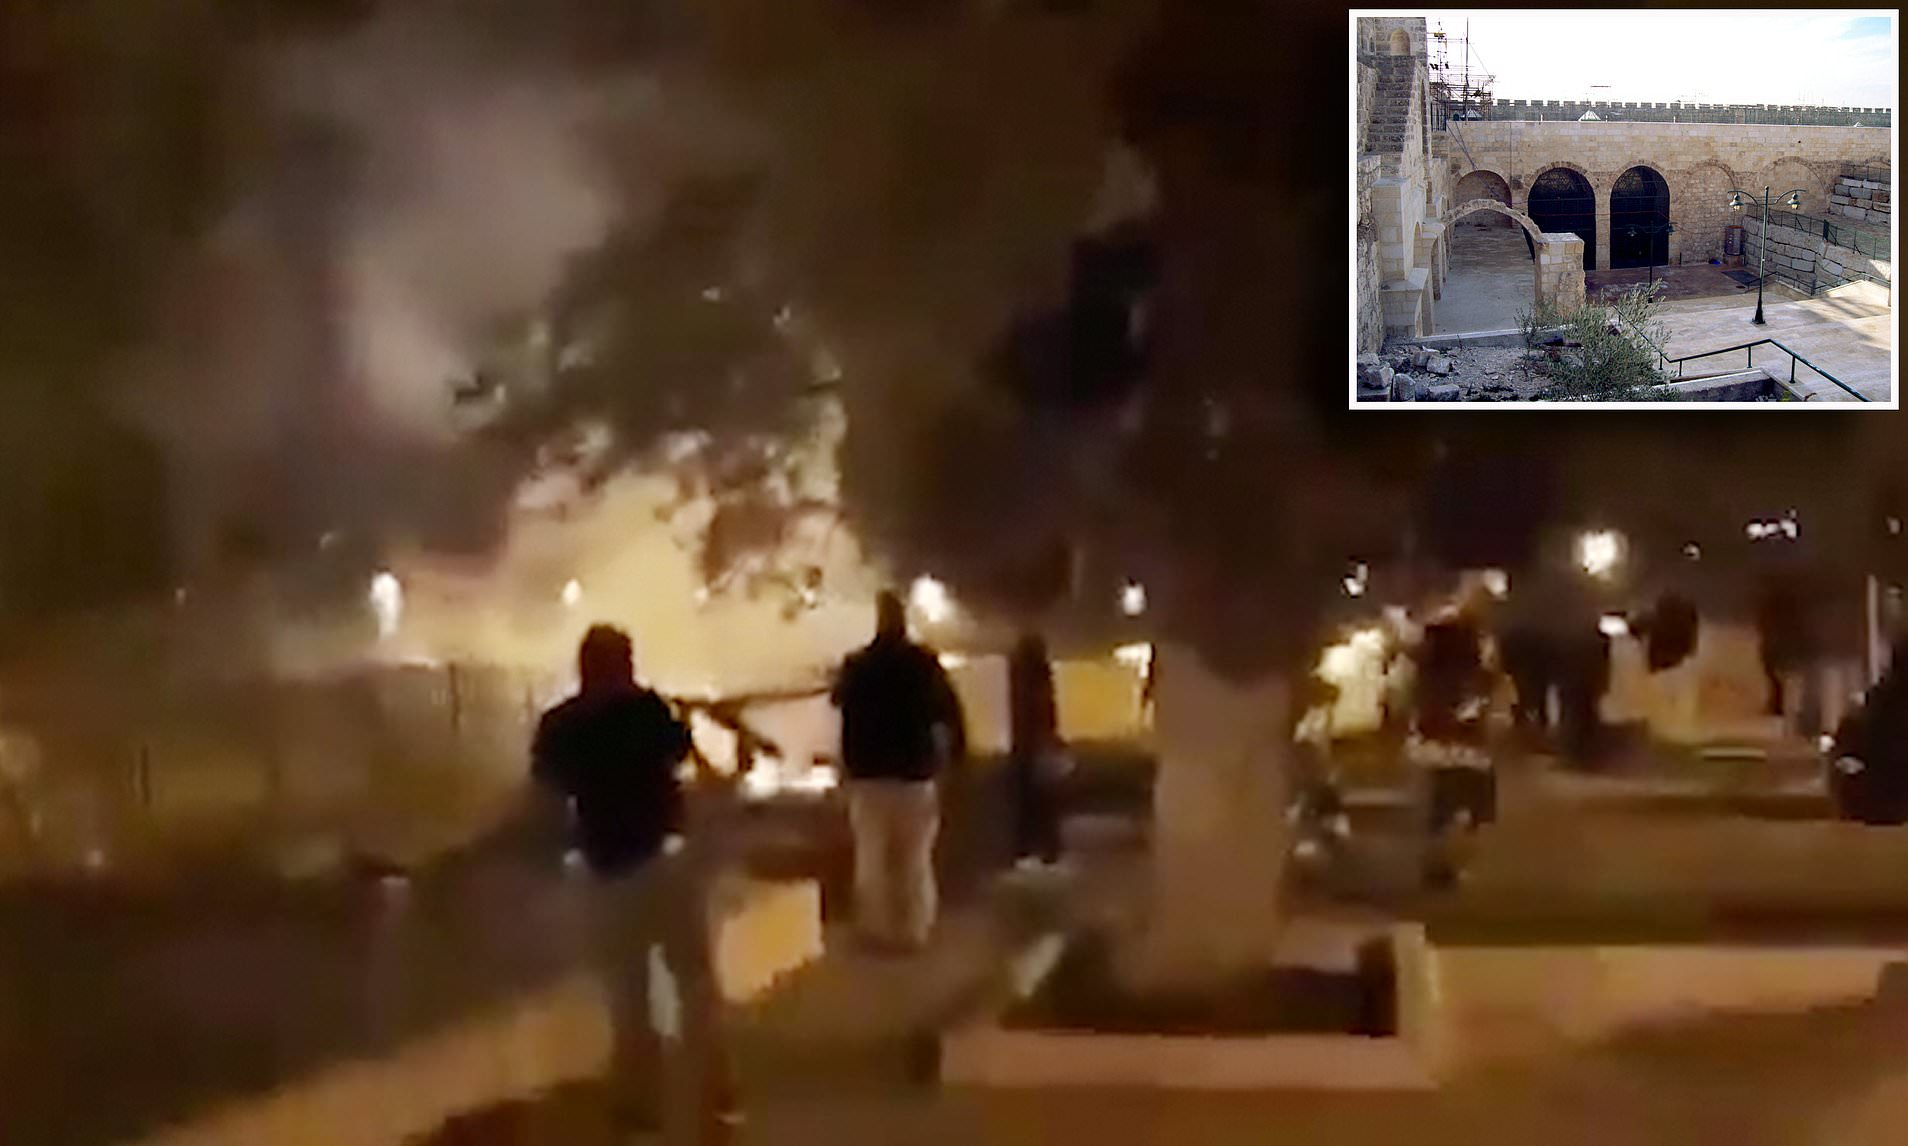 JERUSALEM'S AL-AQSA MOSQUE FIRE BURNS AT THE SAME TIME AS FLAMES ENGULF NOTRE DAME CATHEDRAL IN PARIS